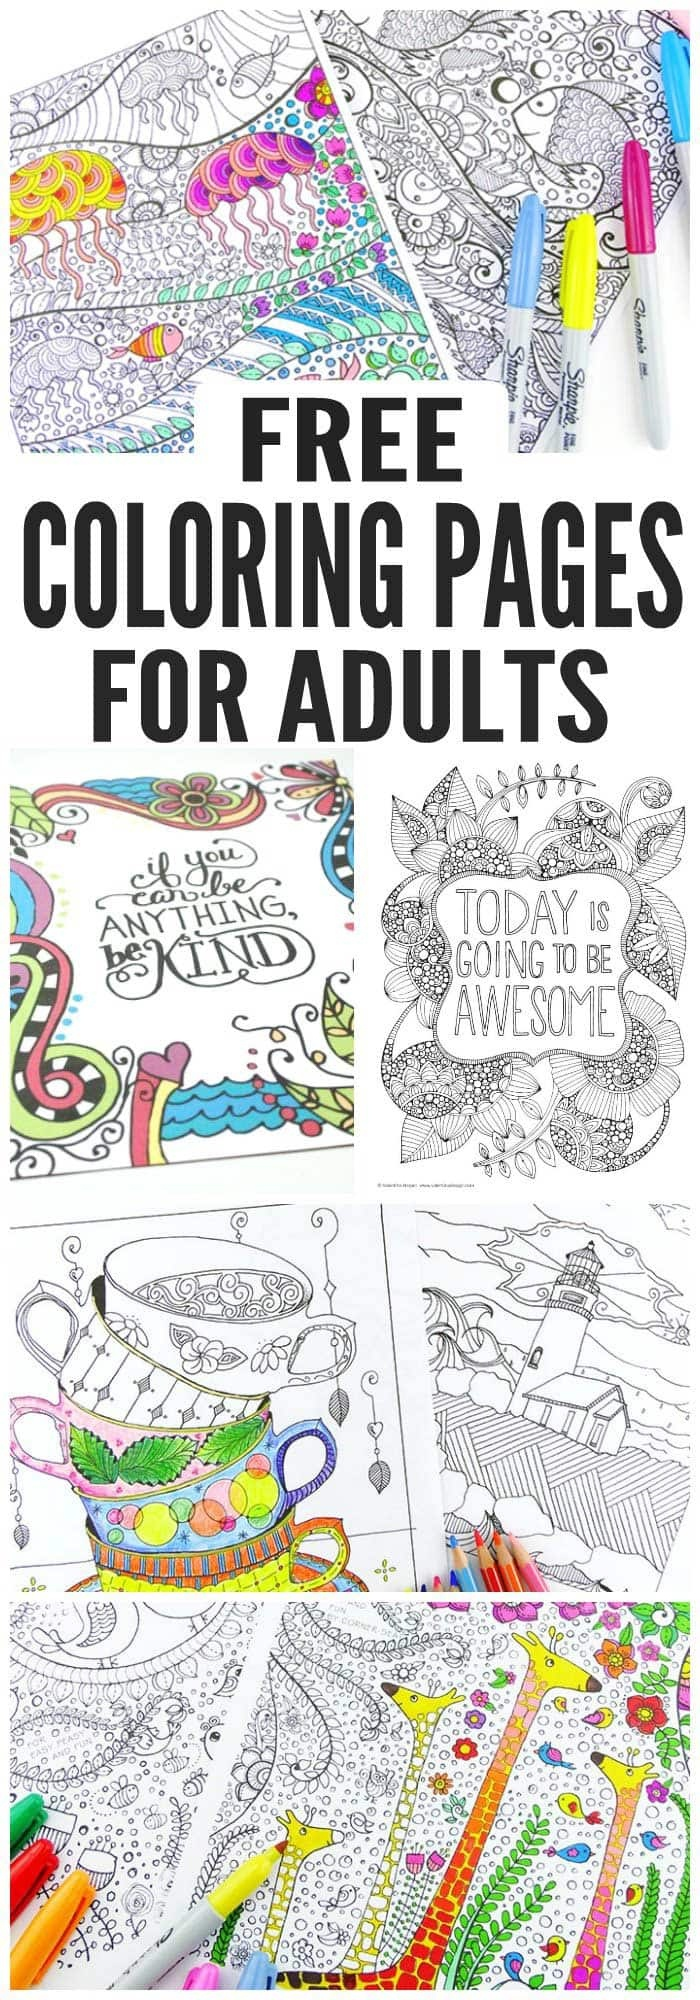 Free Coloring Pages For Adults - Easy Peasy And Fun - Free Printable Coloring Book